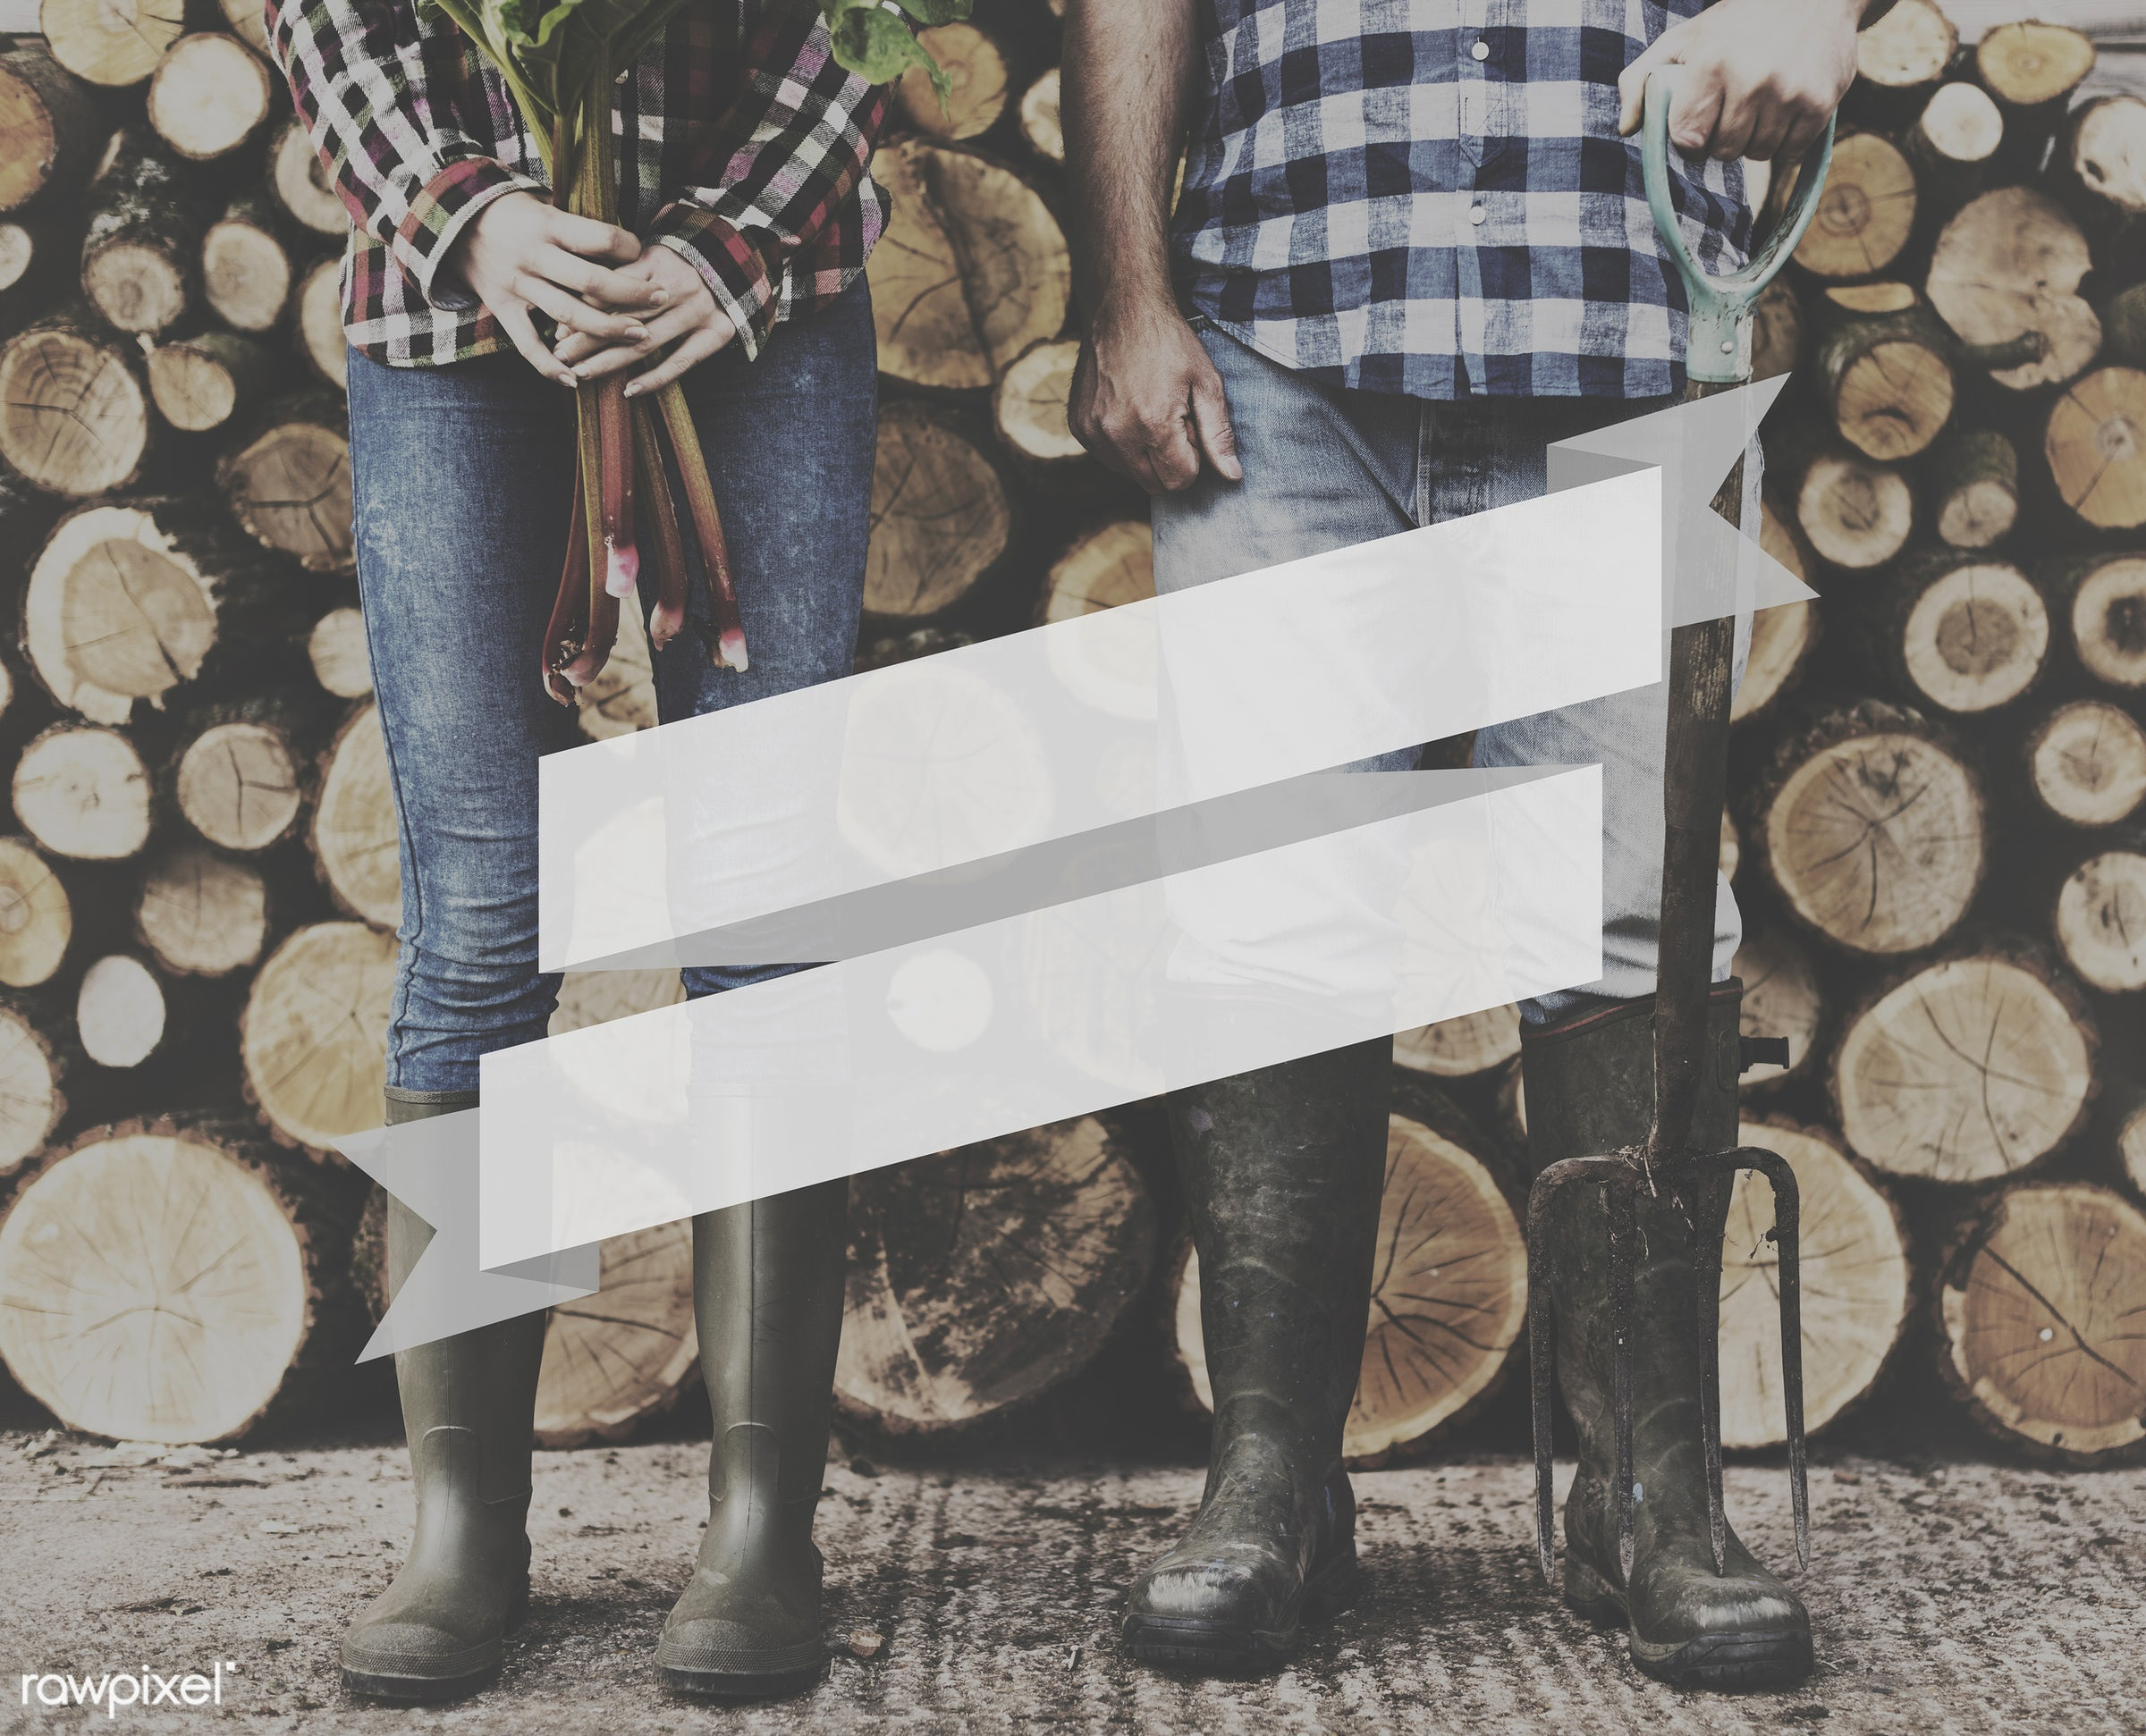 farm, award, badge, banner, blank, caucasian, certificate, copy space, farmer, firewood, graphic, hands, holding, jeans,...